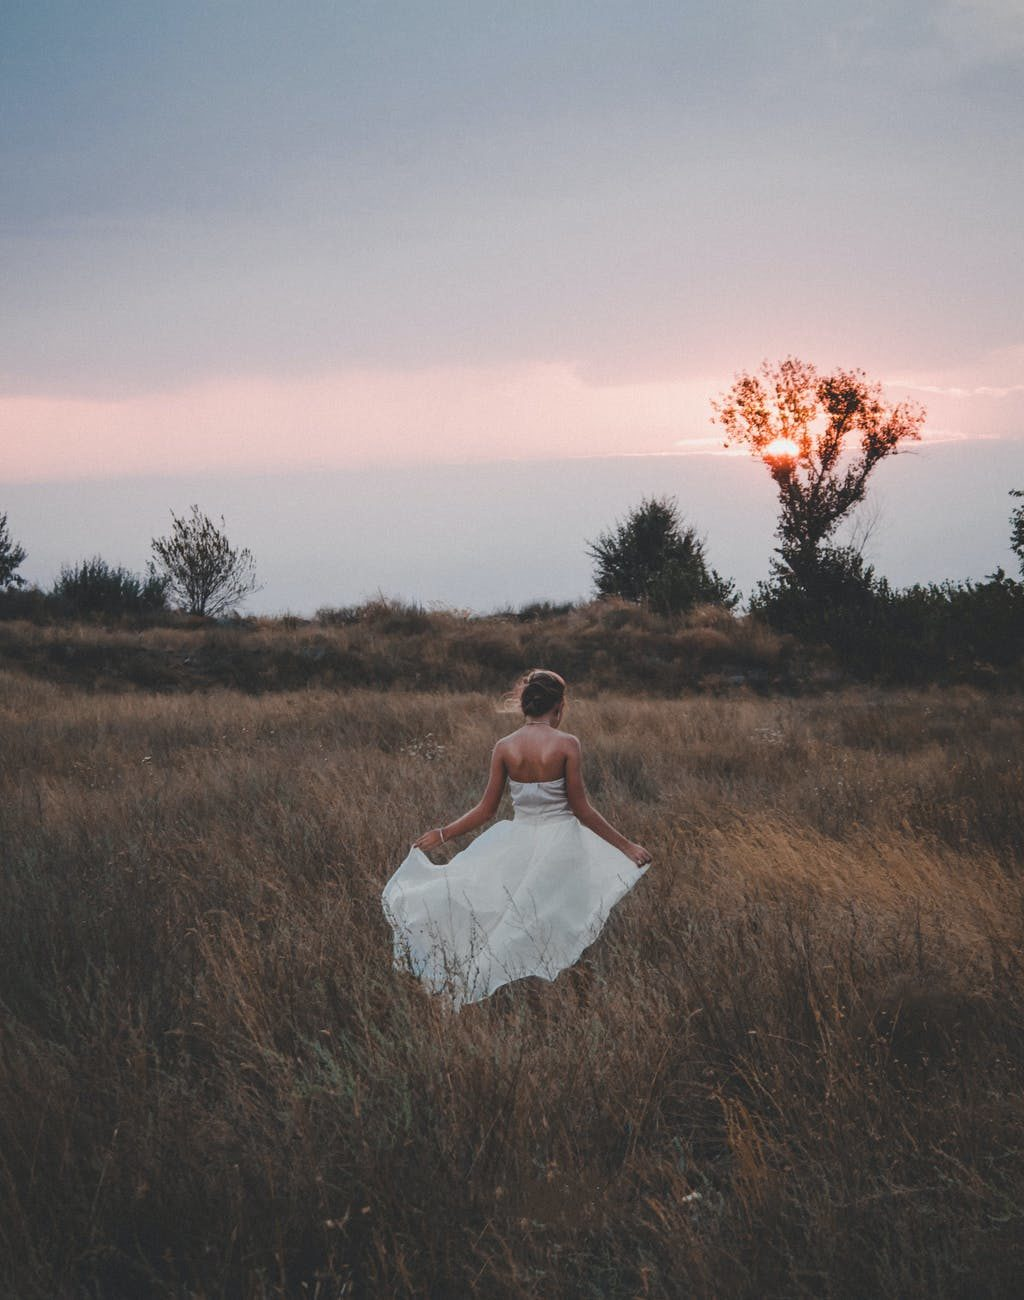 serene young woman in white dress walking in rural meadow at sundown